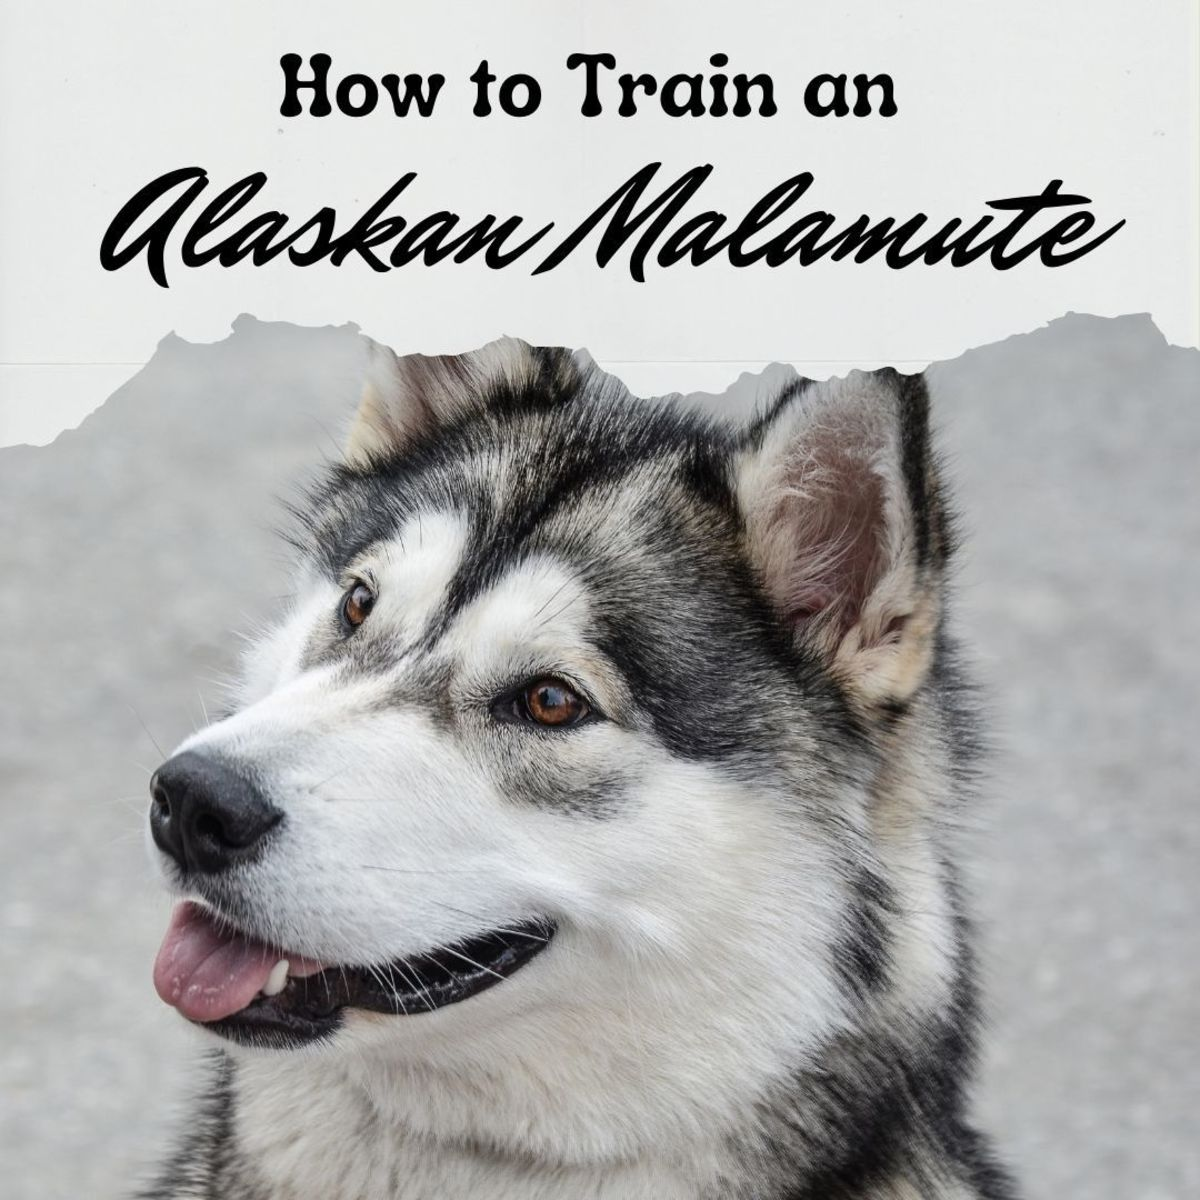 A guide to training Alaskan Malamutes